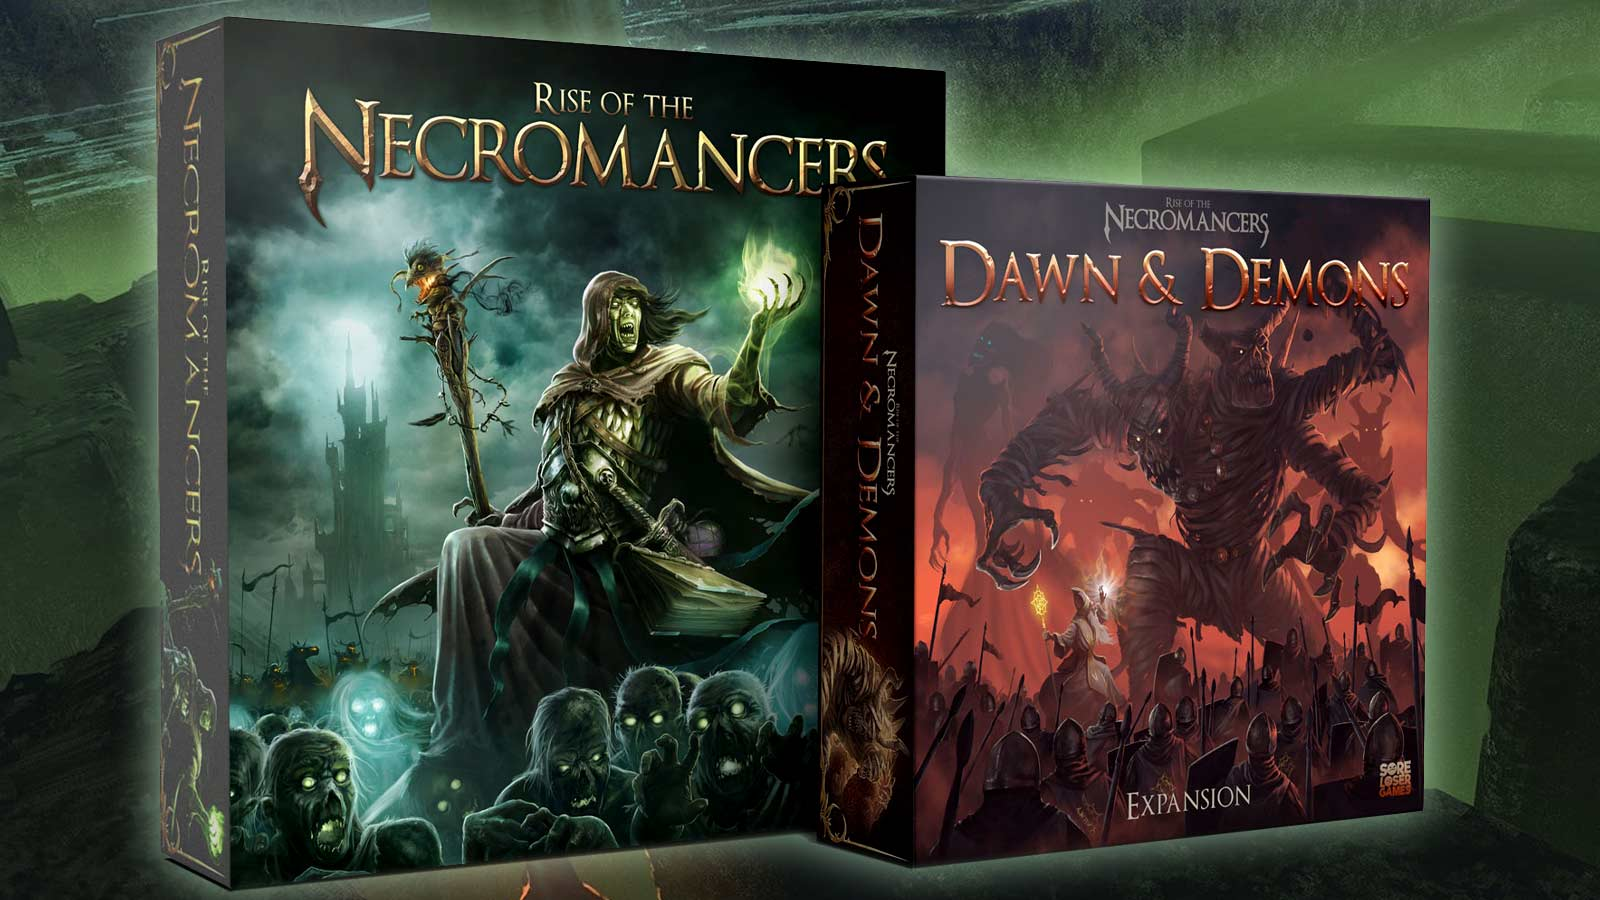 Rise of the Necromancers e Dawn & Demons – Unboxing